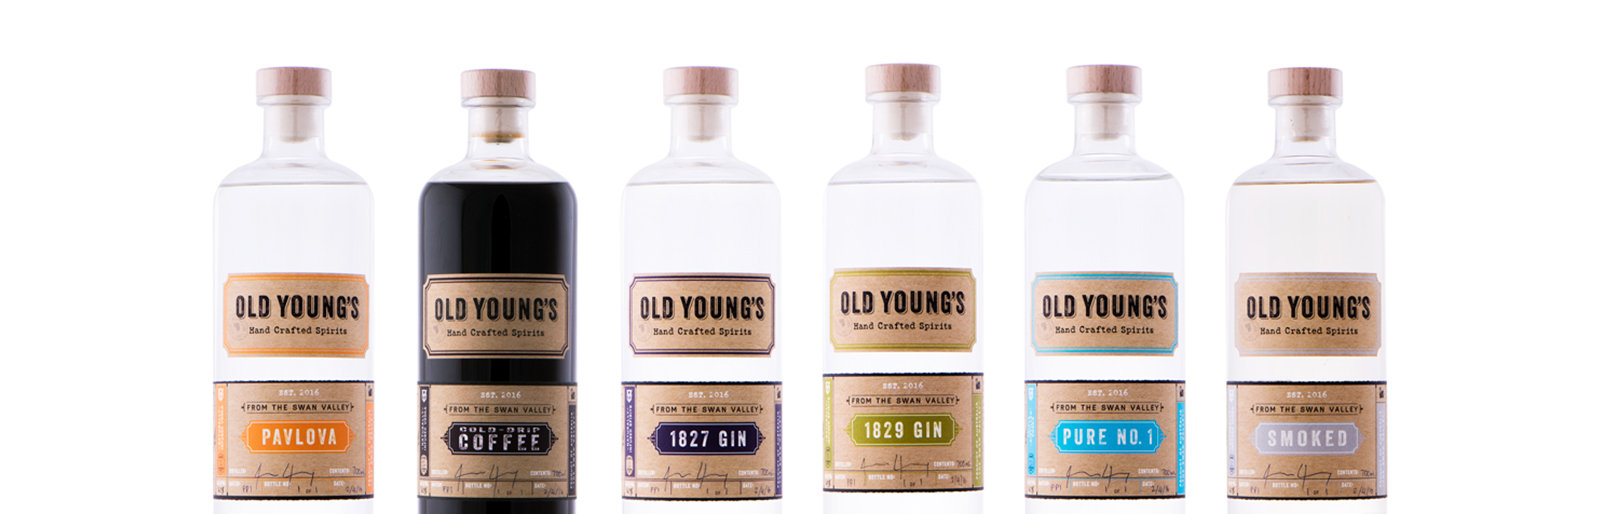 Old_Youngs_bottles_parallax_small